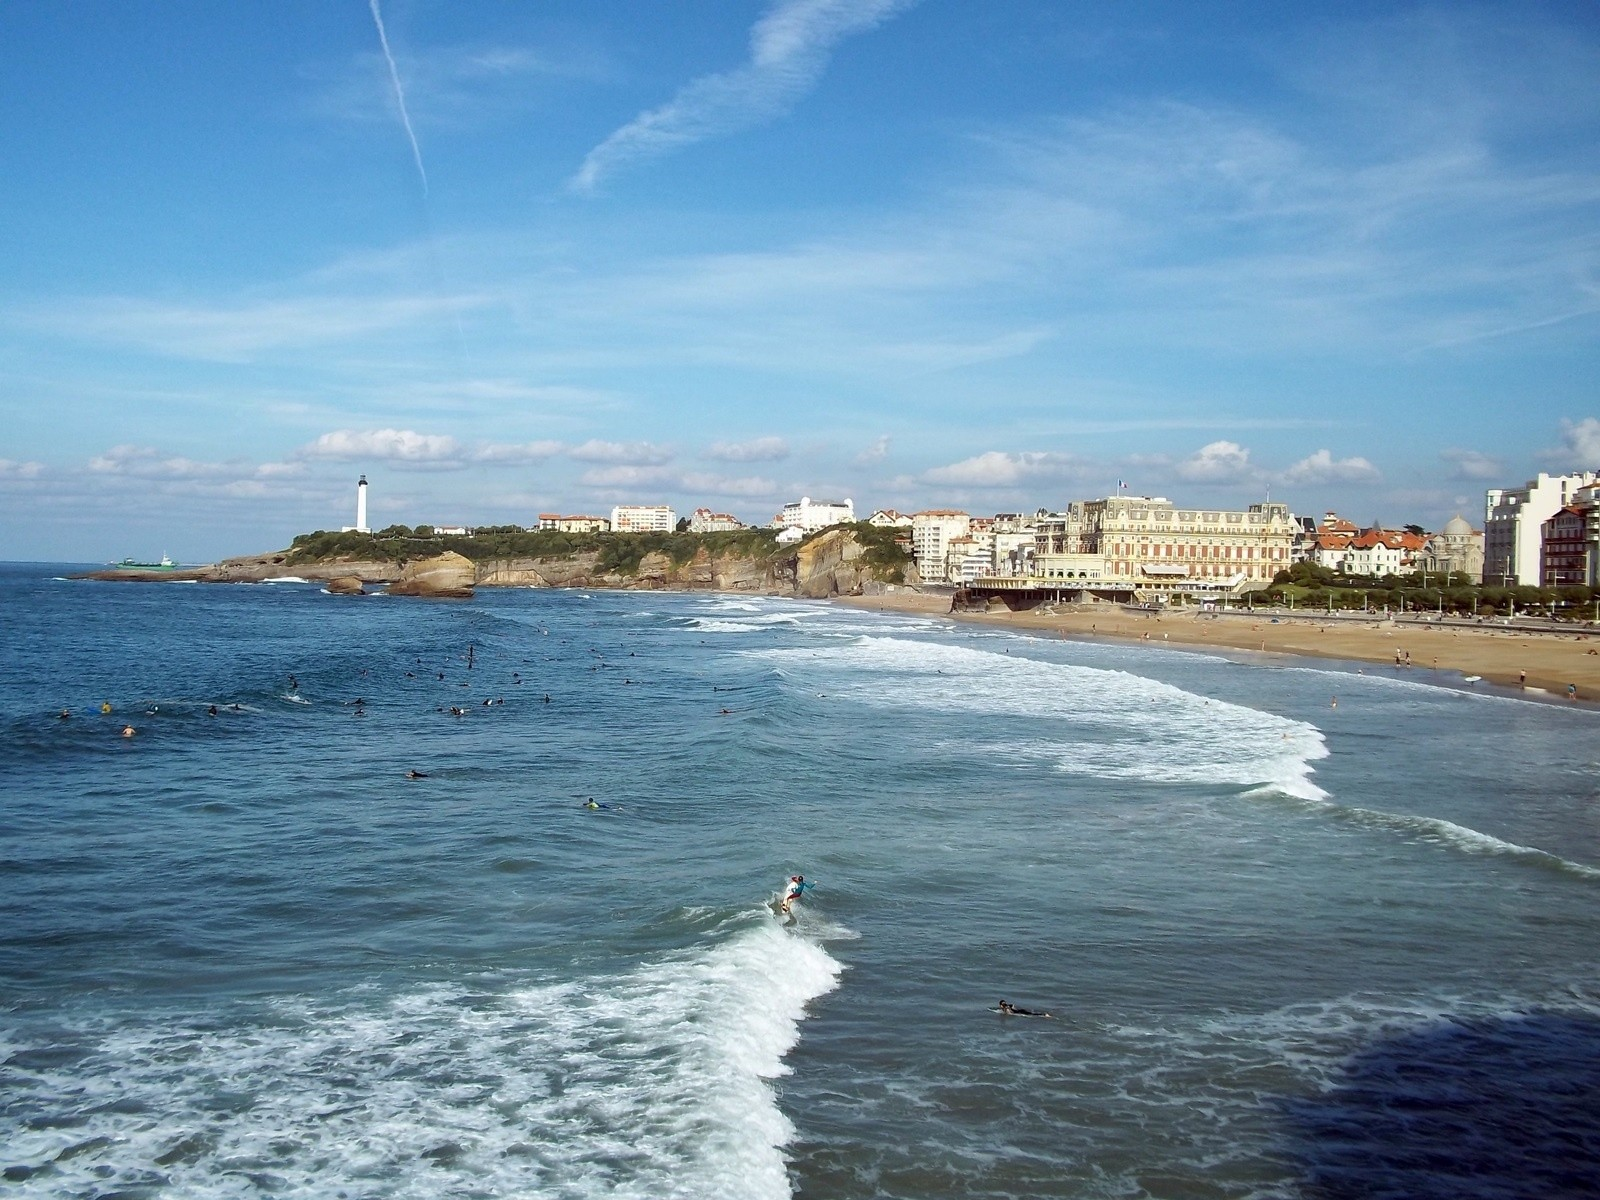 A.Basurto's photo of Biarritz Grande Plage